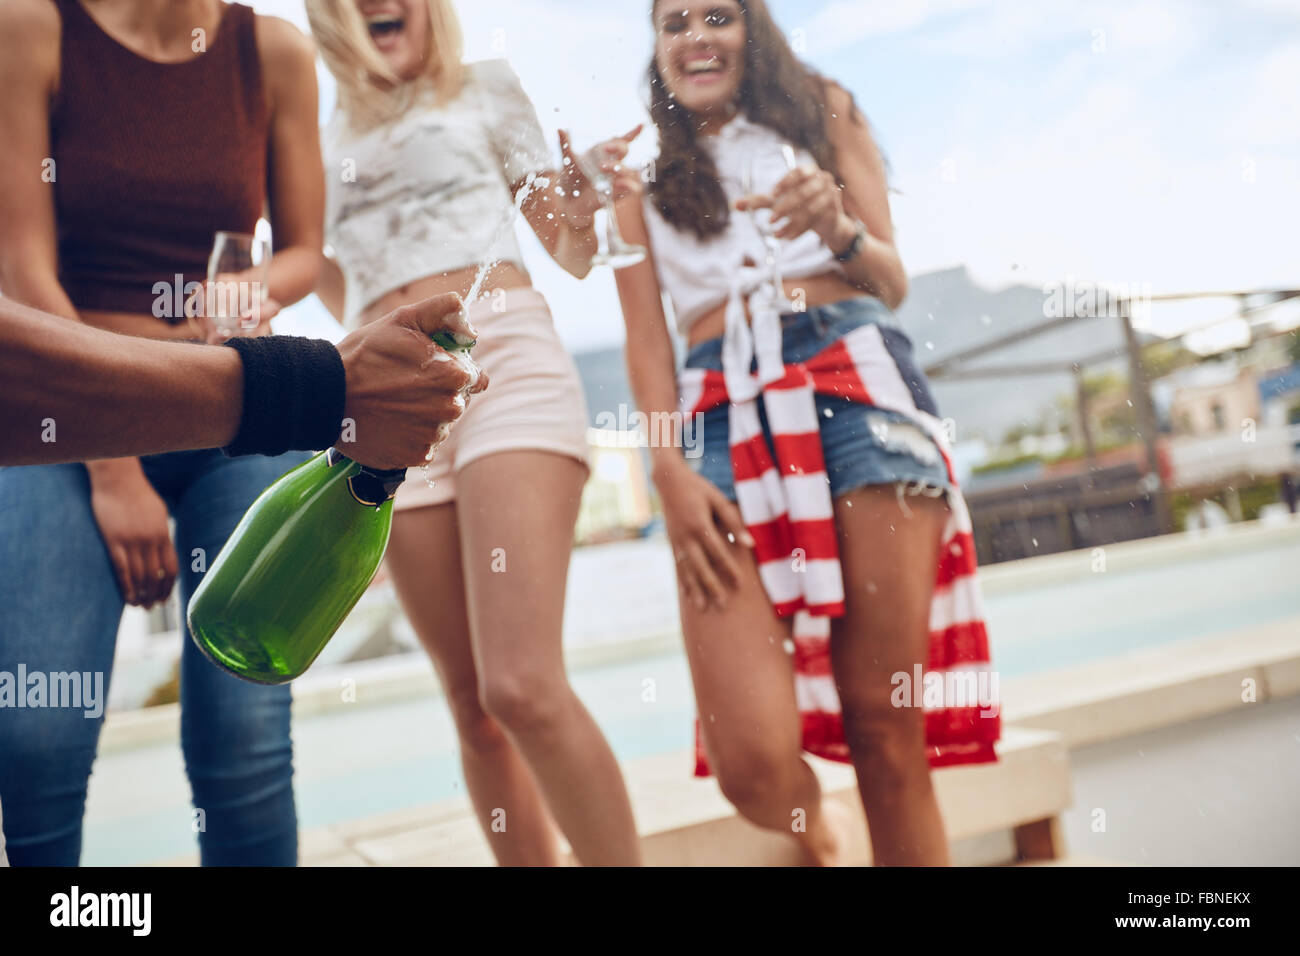 Cropped shot of hand of man holding a champagne bottle with female friends standing in background. Champagne slipping - Stock Image